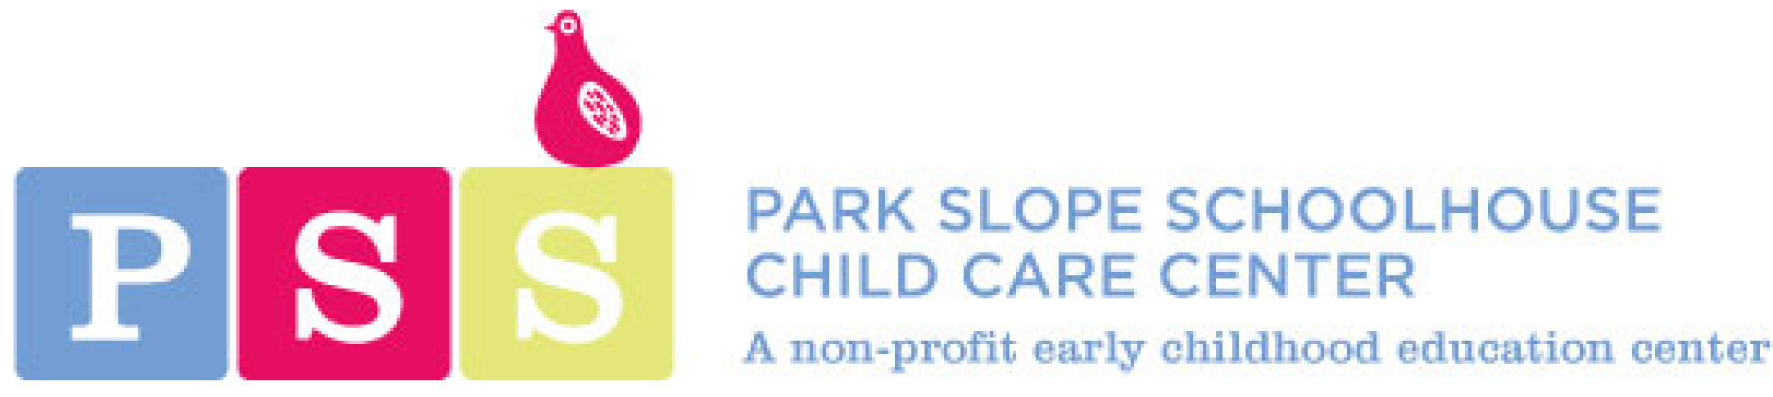 Park Slope Schoolhouse Child Care Center